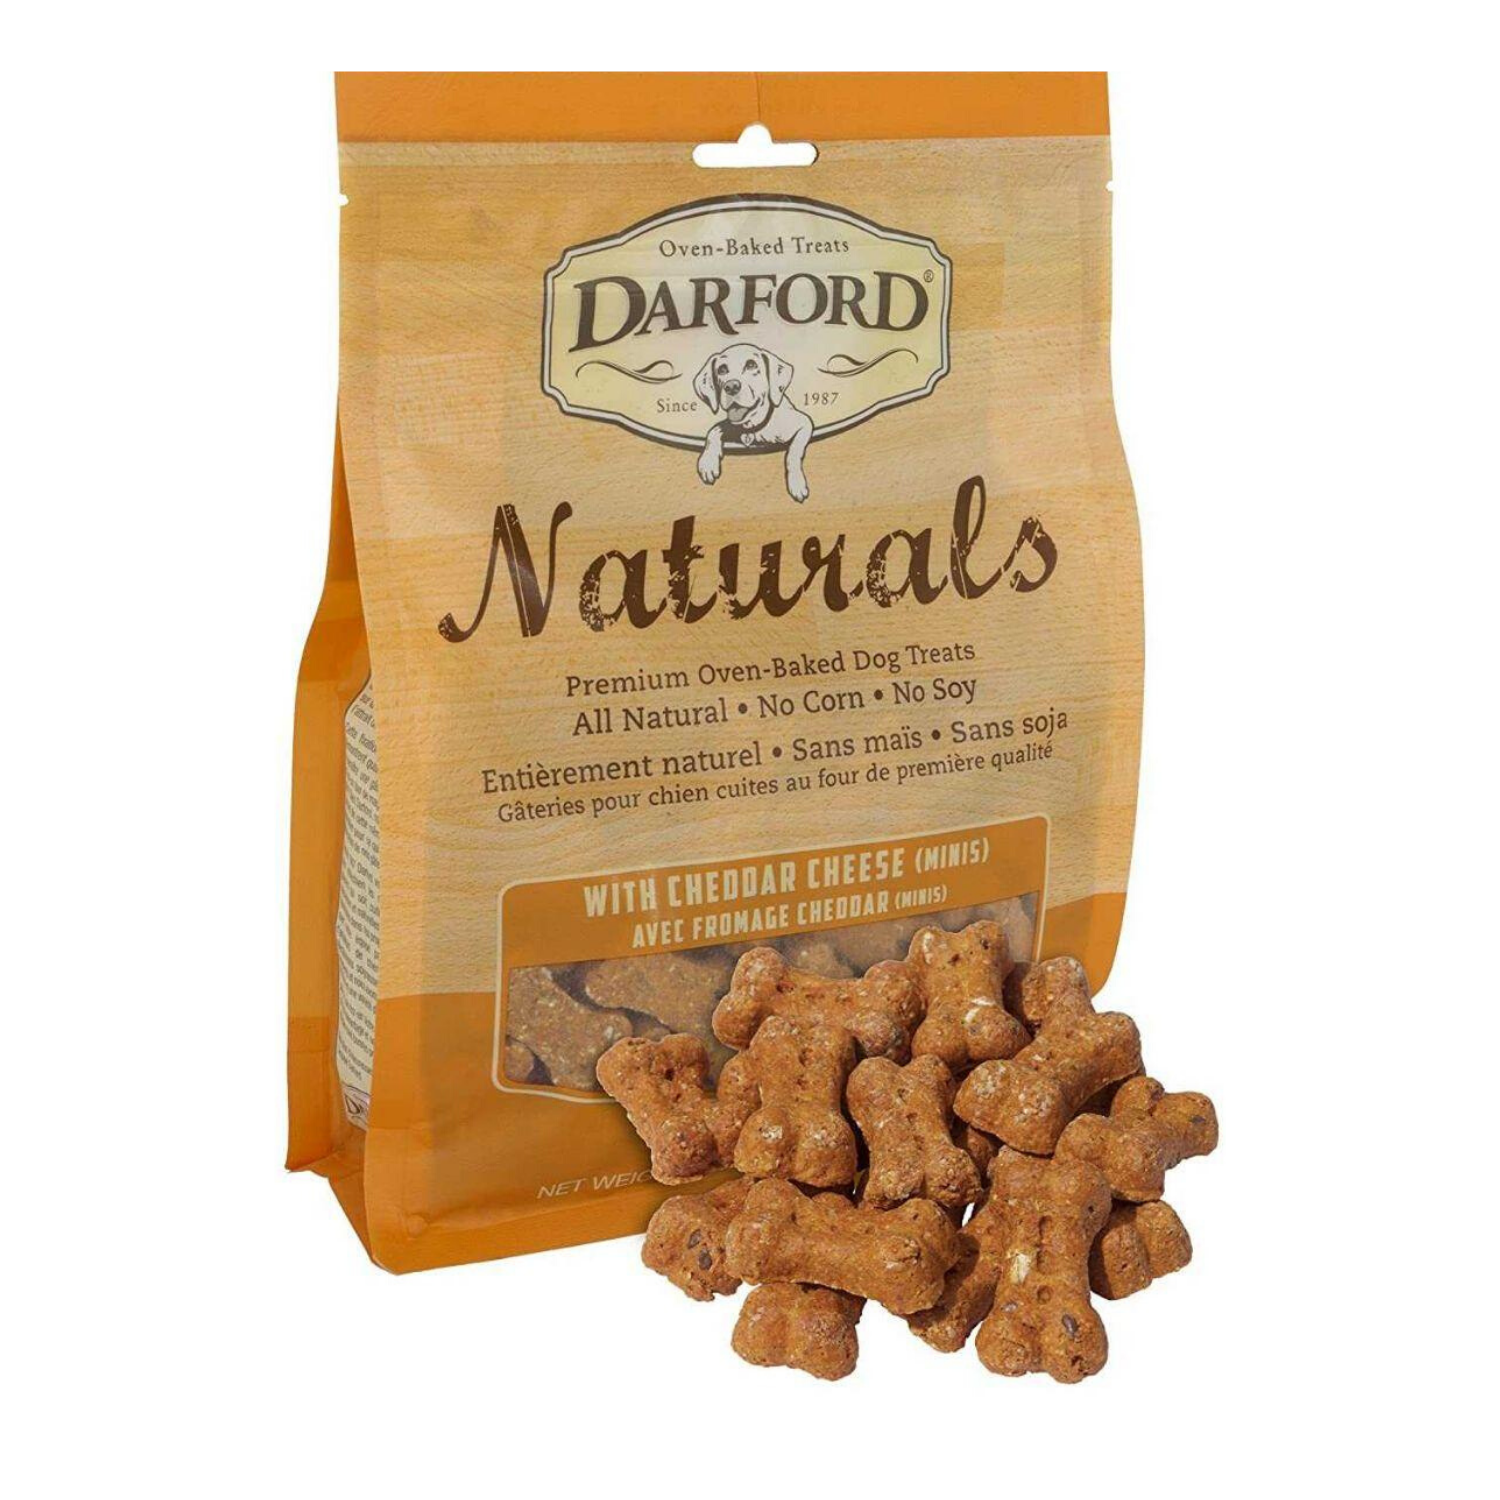 Darford Naturals (Cheddar) Minis for Dogs - 170g / 400g